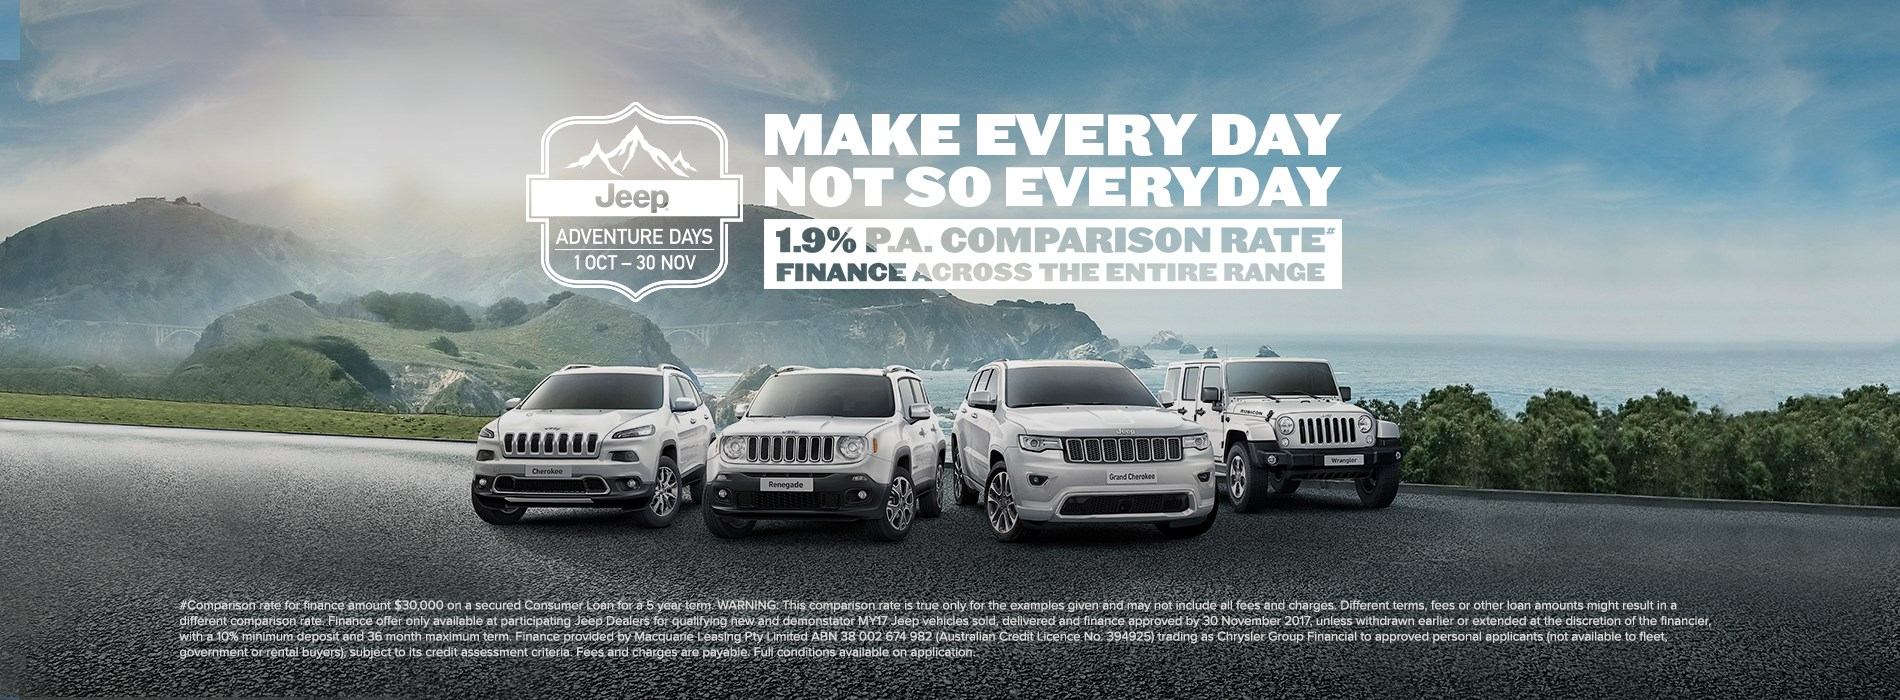 Jeep Adventure Days 1.9% P.A. Comparison Rate Finance Offer